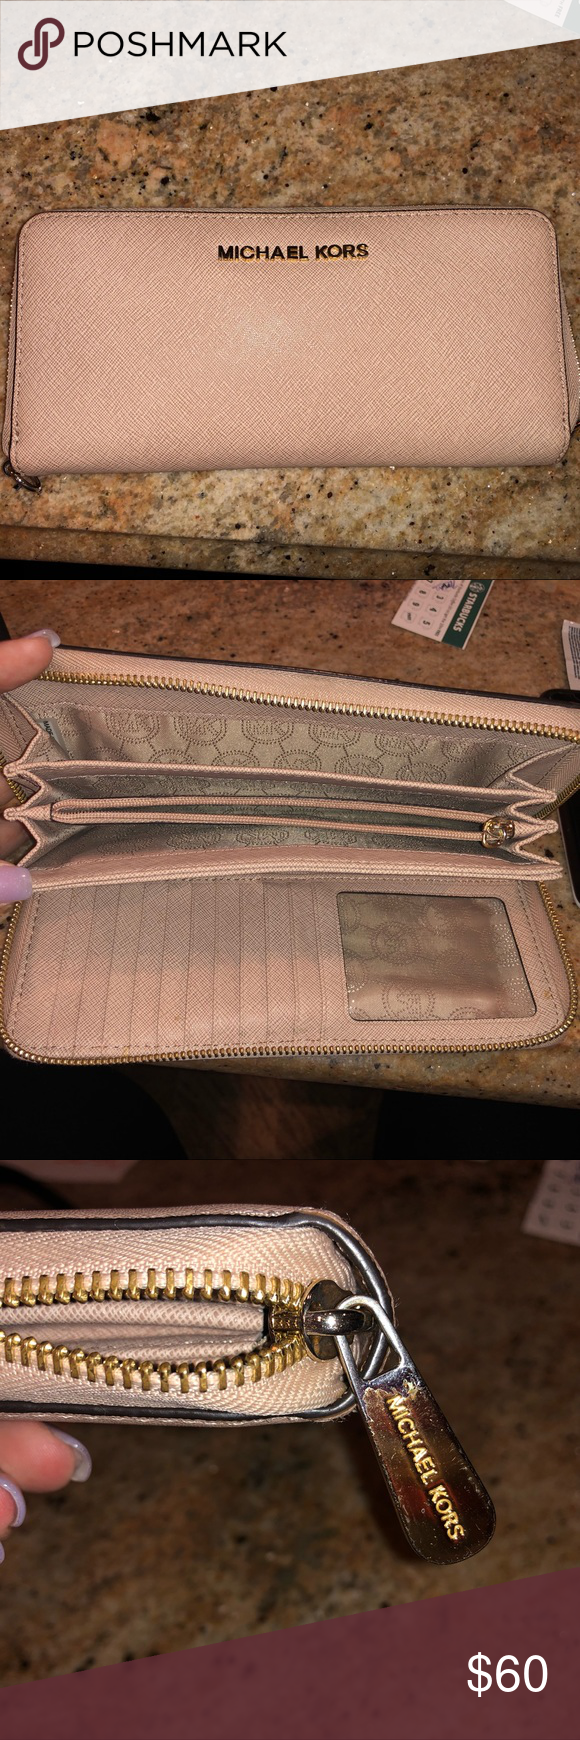 85aaed0d0a93 Slightly used Michael Kors continental wristlet. Michael kors wallet! NUDE Michael  Kors Bags Clutches & Wristlets